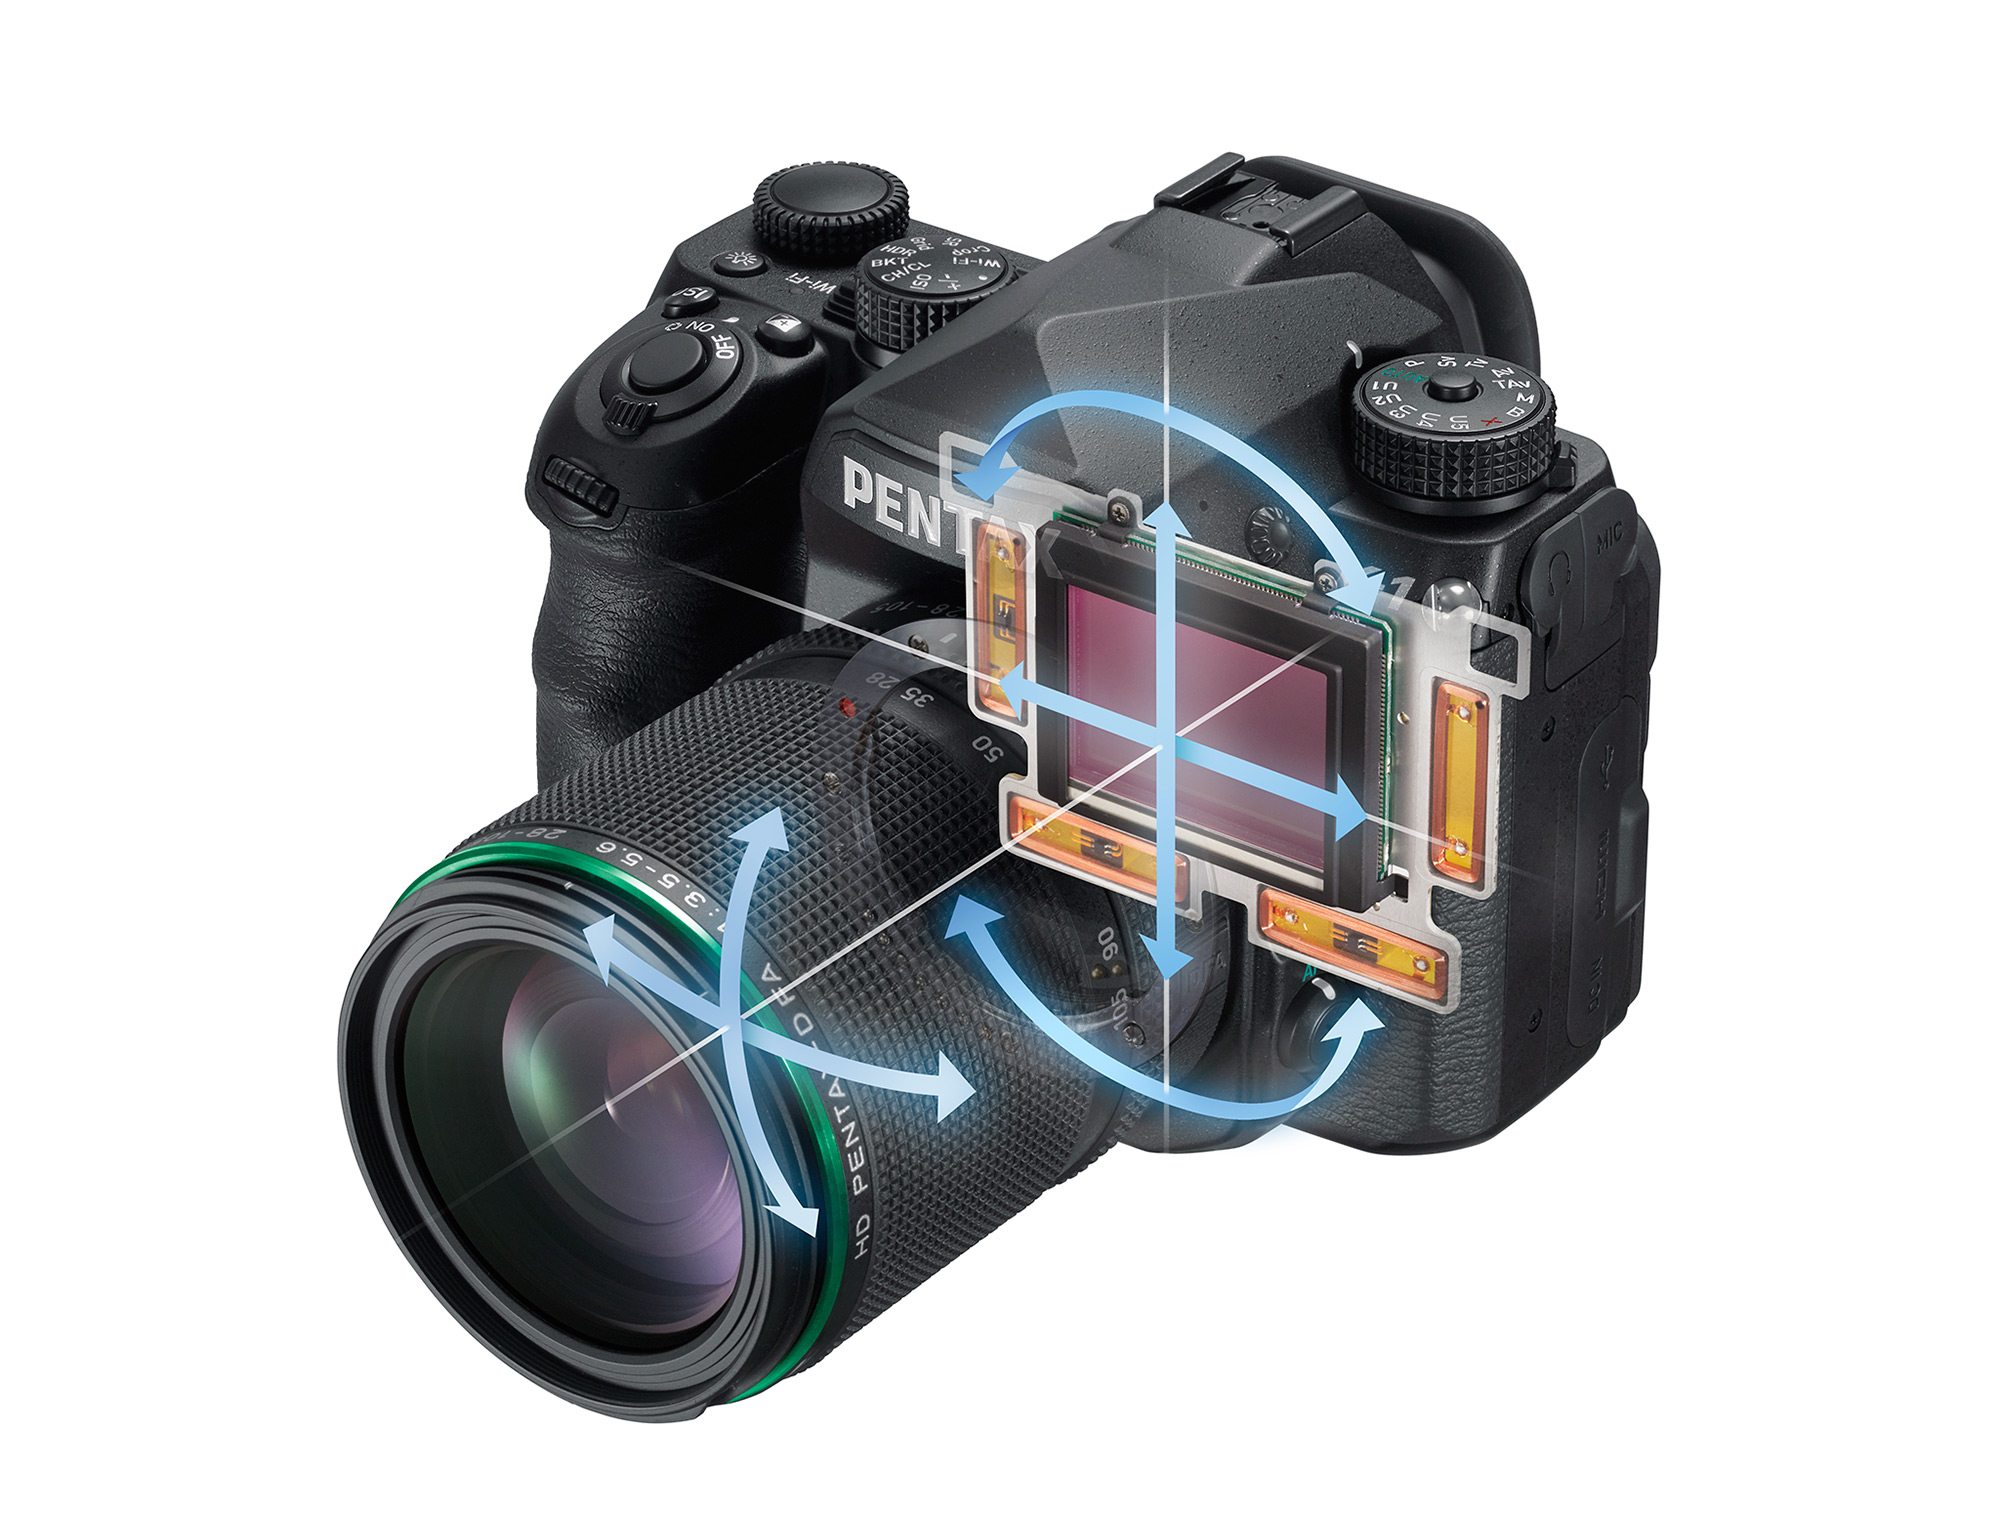 Camera Full Frame Sensor Dslr Cameras the long difficult road to pentax full frame digital photography k 1 is one of very few conventional dslrs ever offer a stabilized sensor but as well image stabilization t